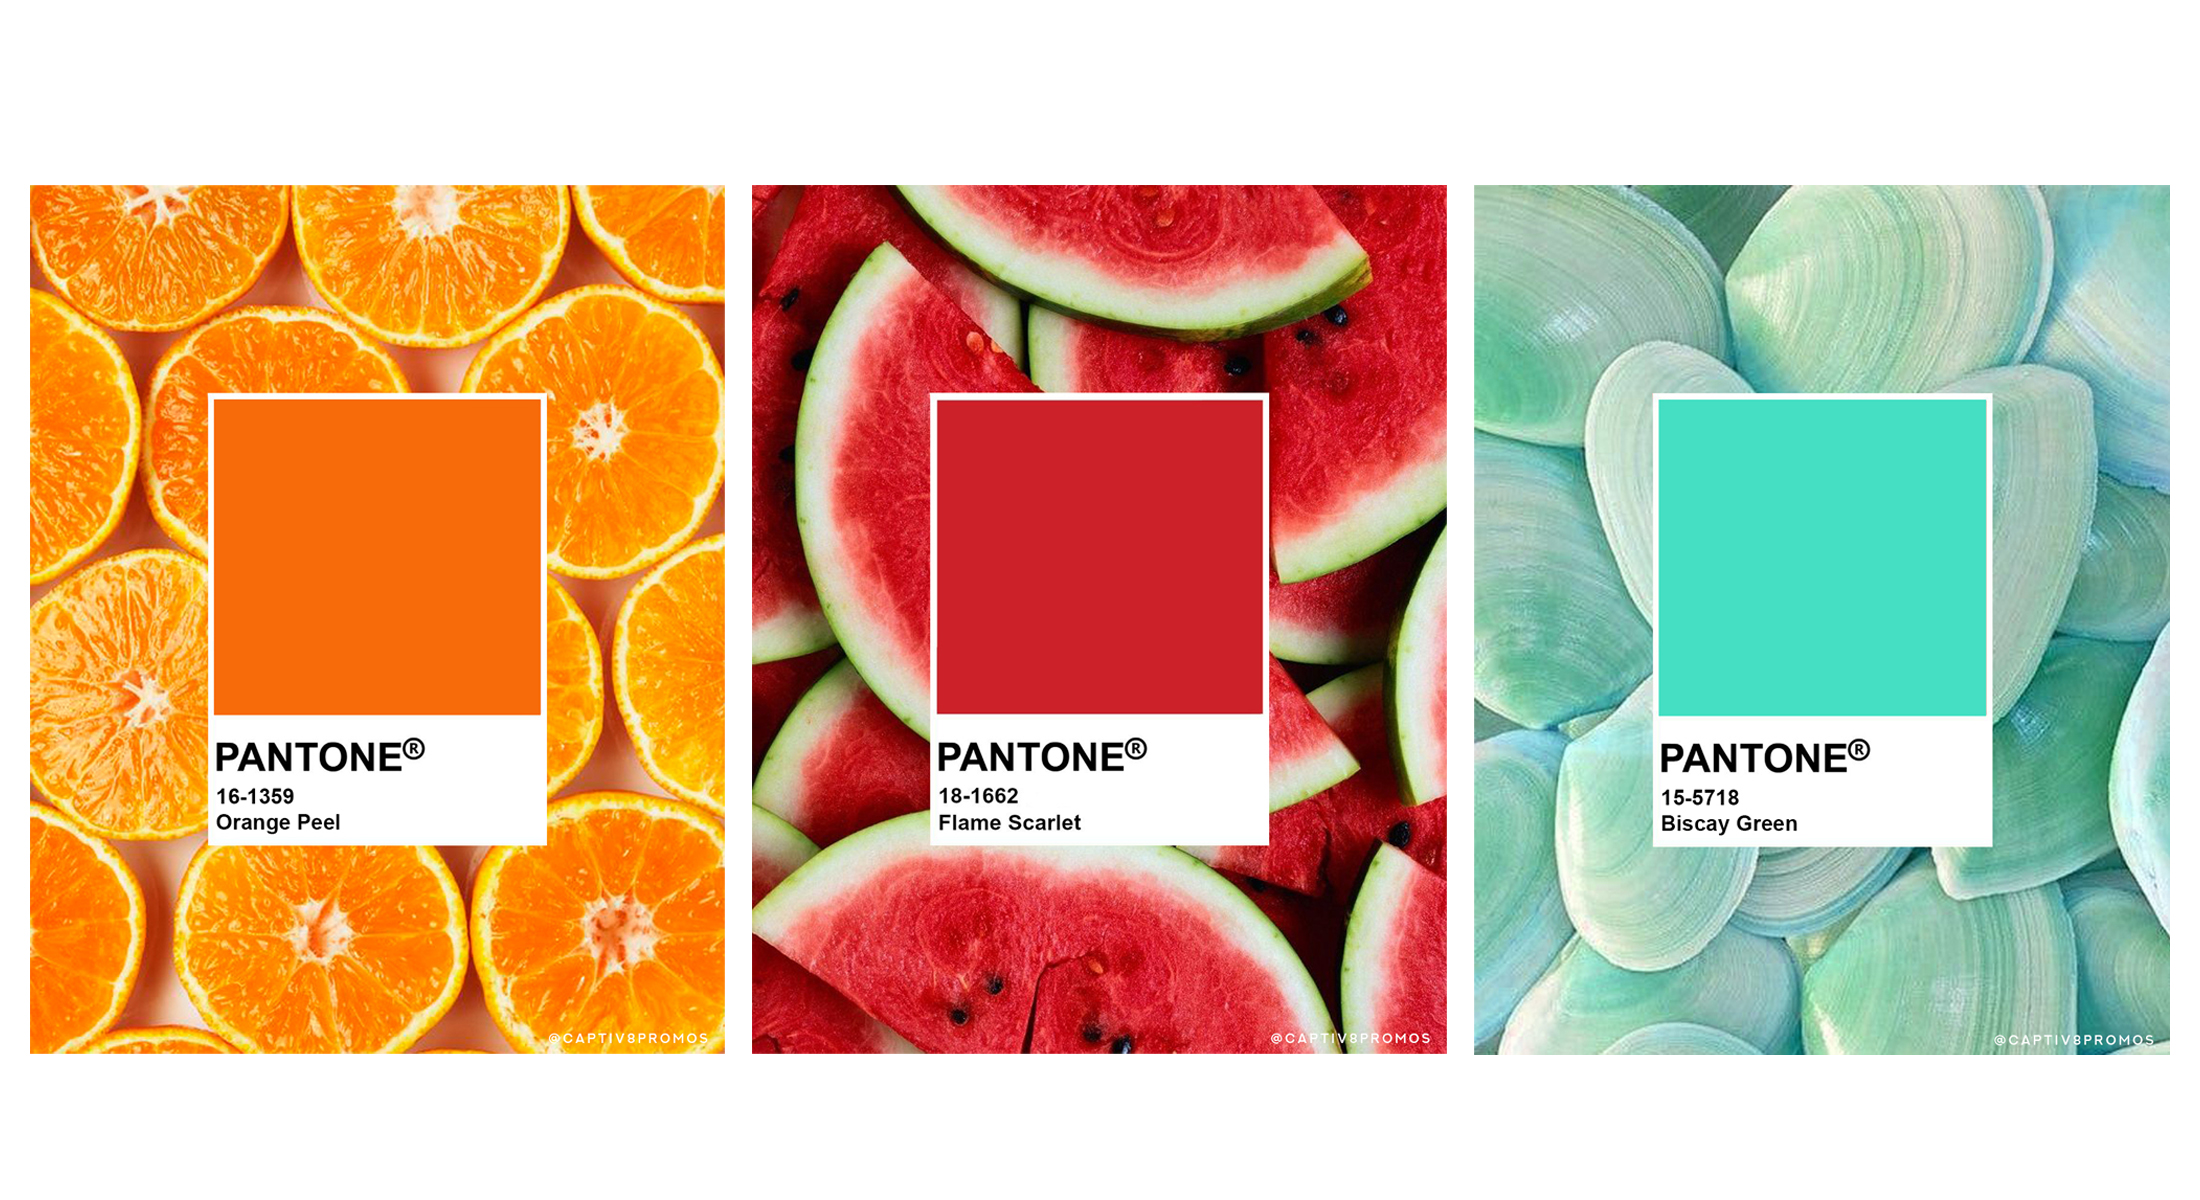 Pantone's Spring/Summer 2020 Color Palette